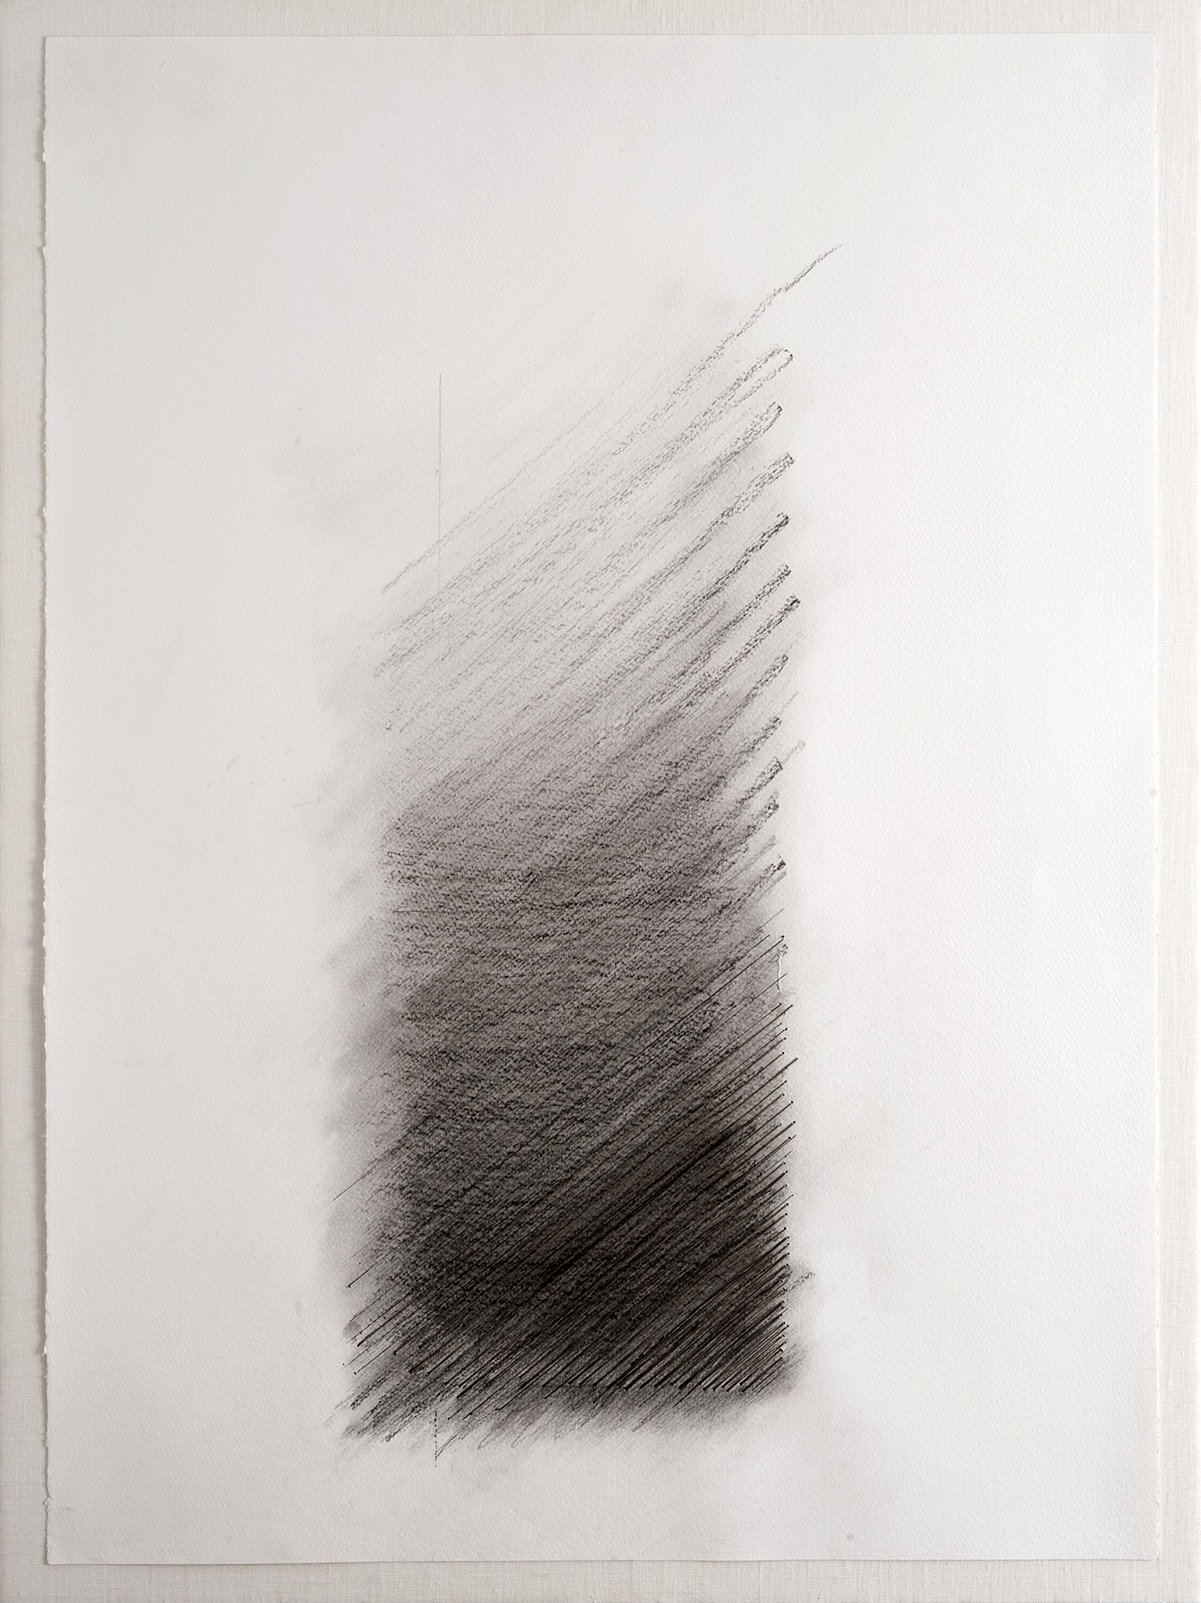 SLANT   Pencil, paper, thread  30 x 22 Inches